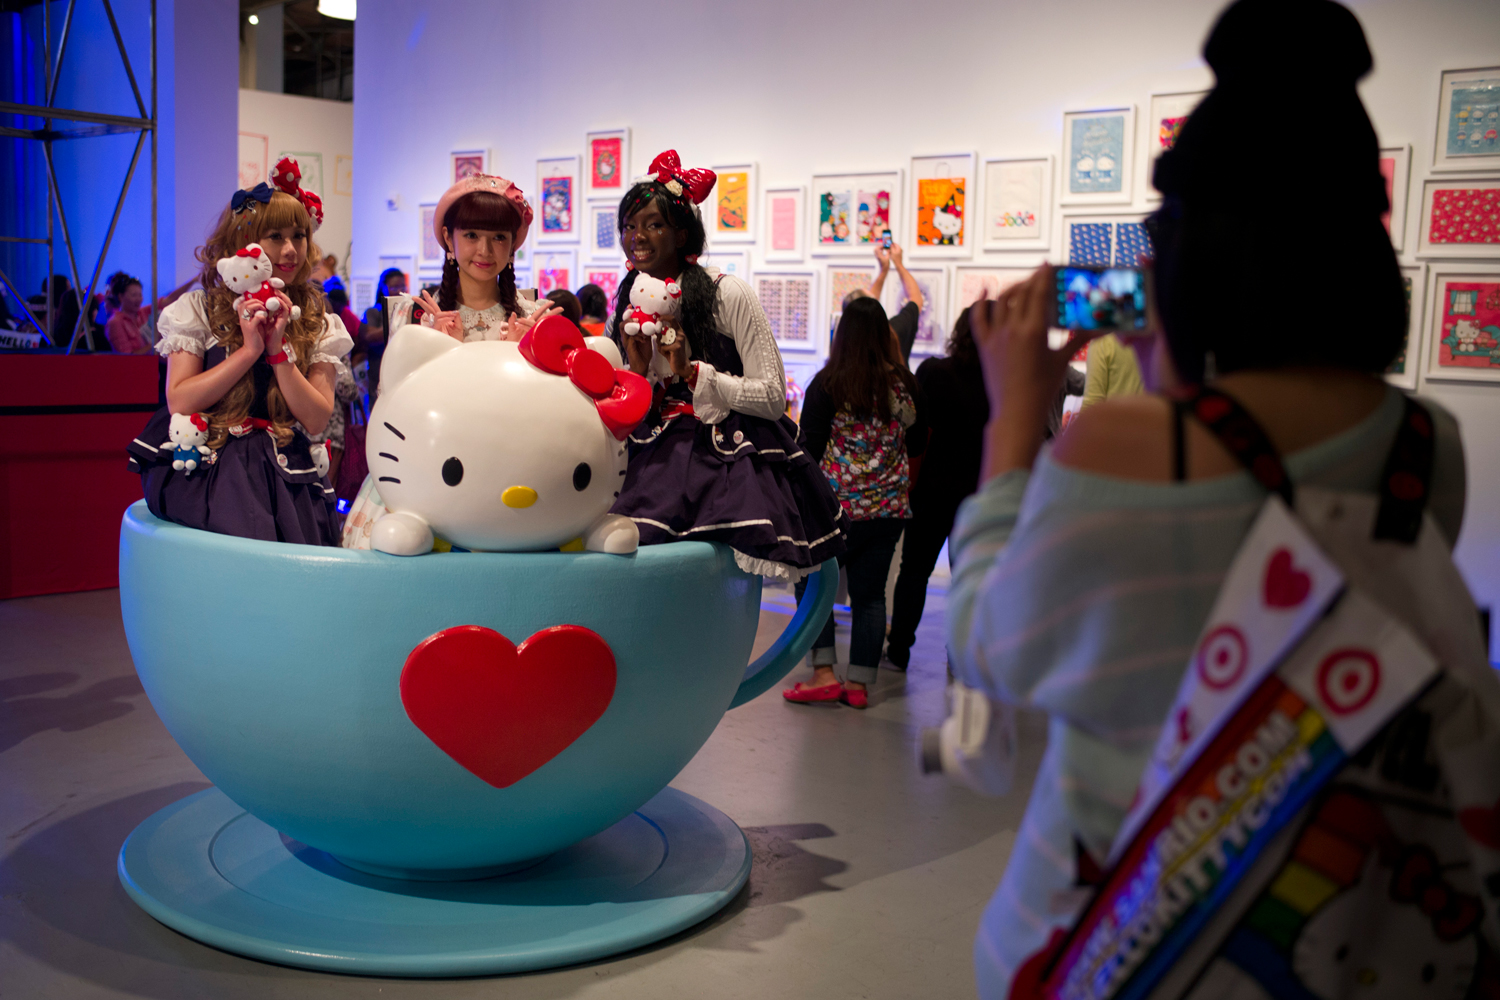 Hello Kitty fans pose for photos in a giant tea cup at the Hello Kitty Con, the first-ever Hello Kitty fan convention, held at the Geffen Contemporary at MOCA, Oct. 30, 2014, in Los Angeles